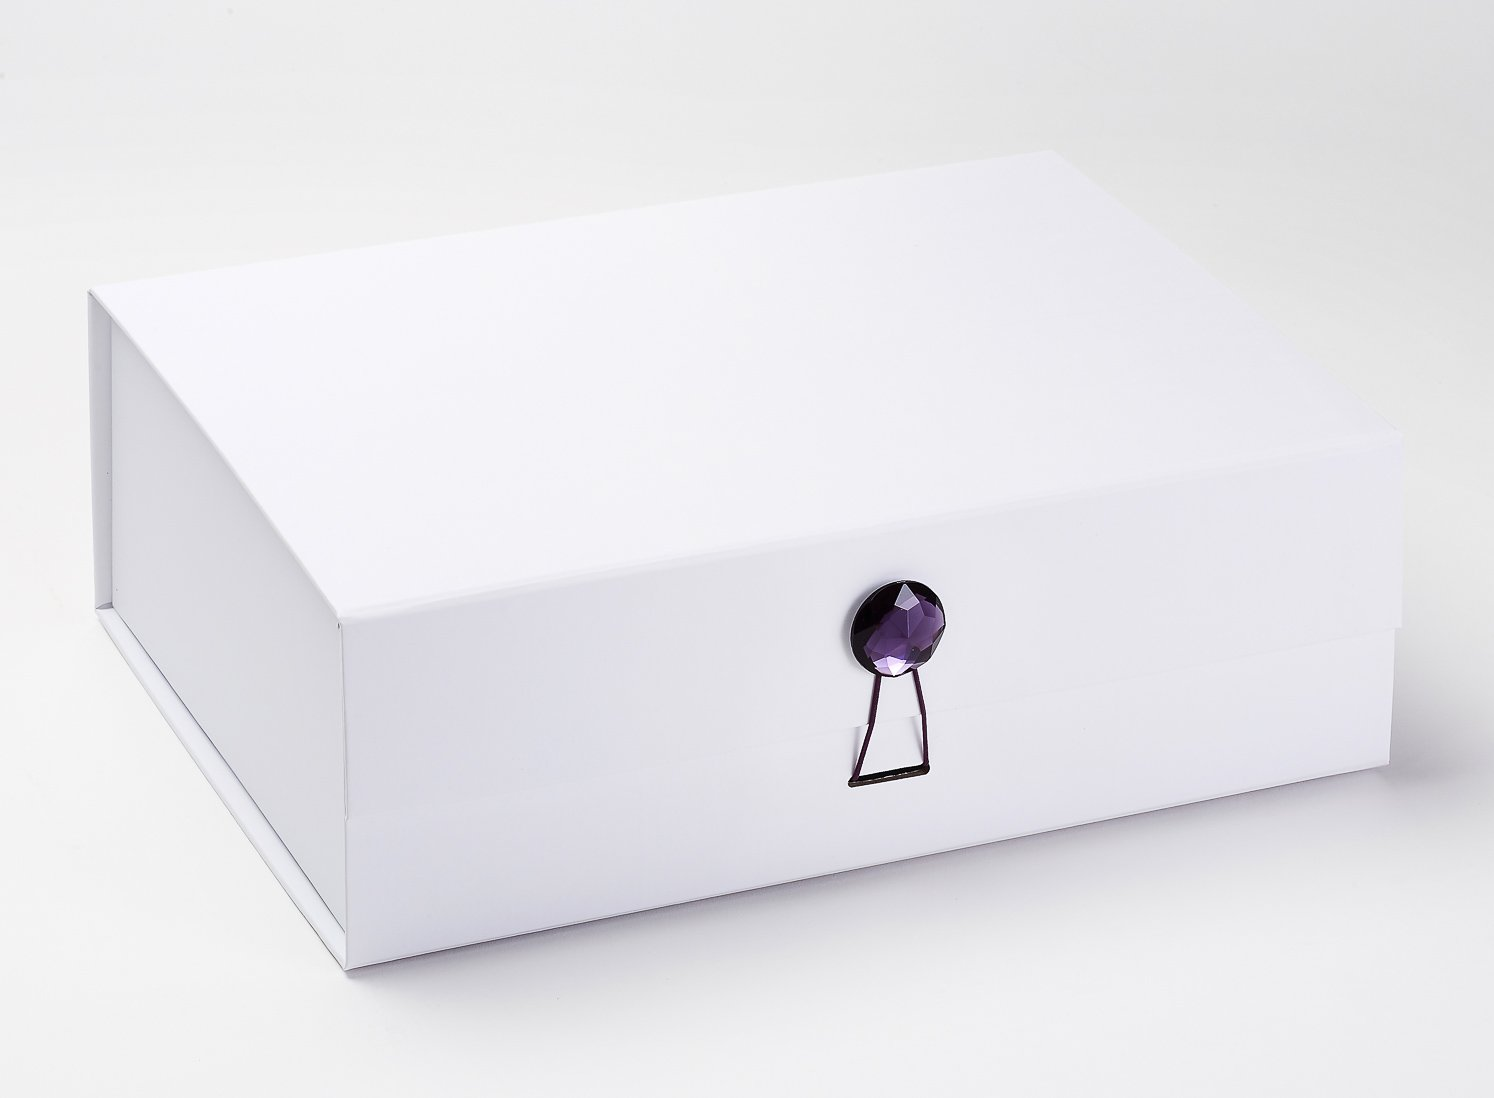 The February birthstone, amethyst, is said to strengthen relationships and give its wearer courage